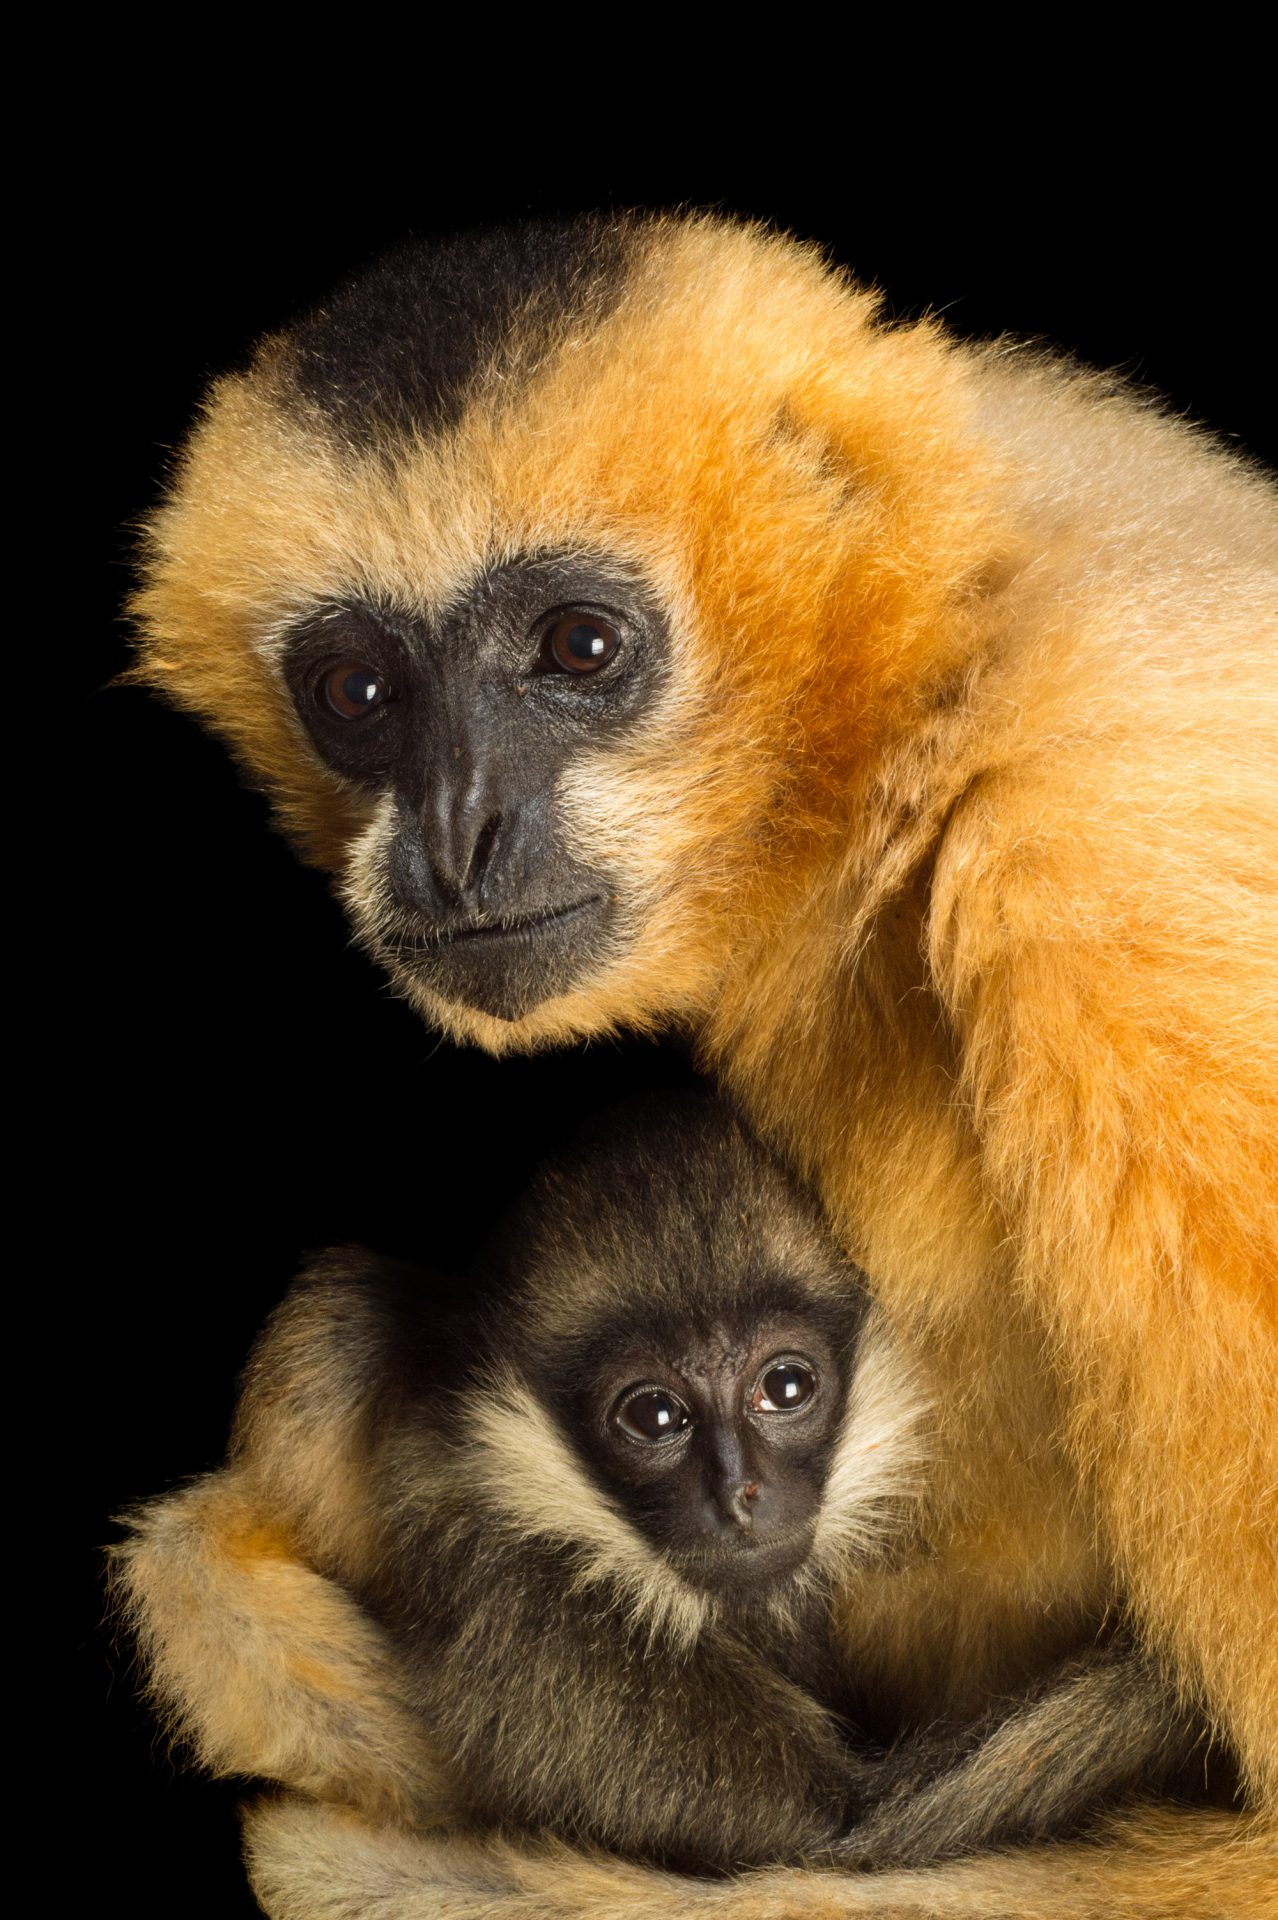 A female, critically endangered Northern white-cheeked gibbon with her year-old baby (Nomascus leucogenys) at the Gibbon Conservation Center.